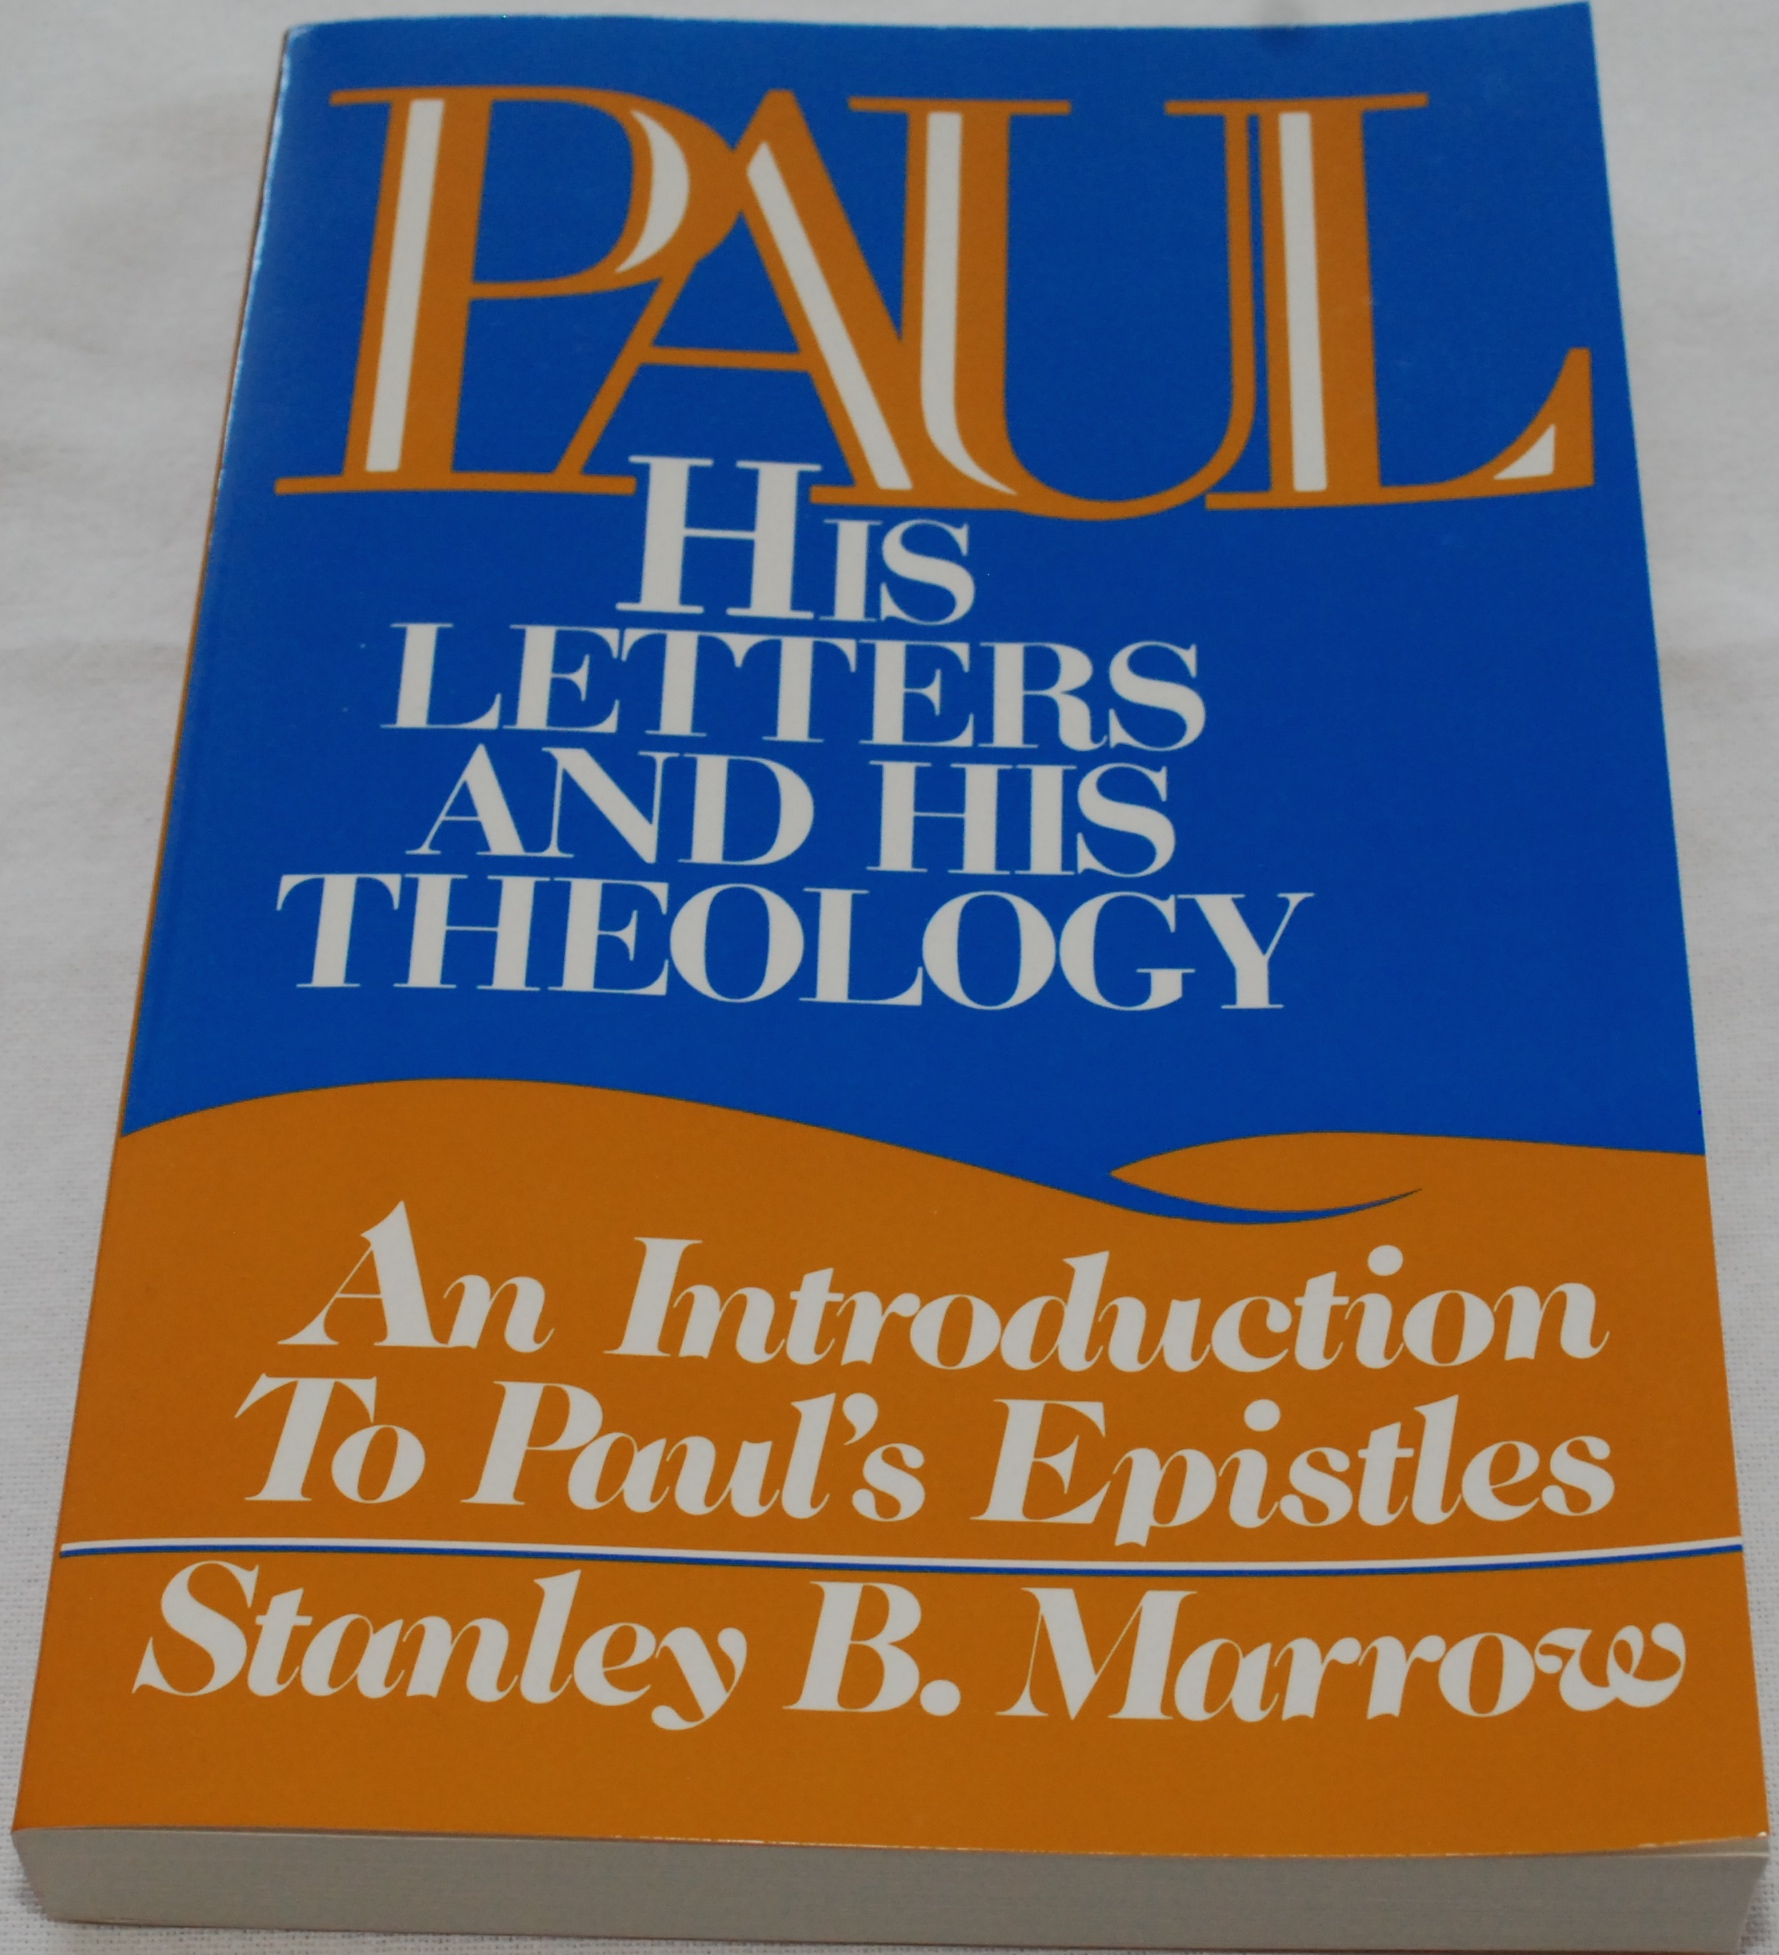 Theology: Paul: His Letters And His Theology By Stanley B. Marrow